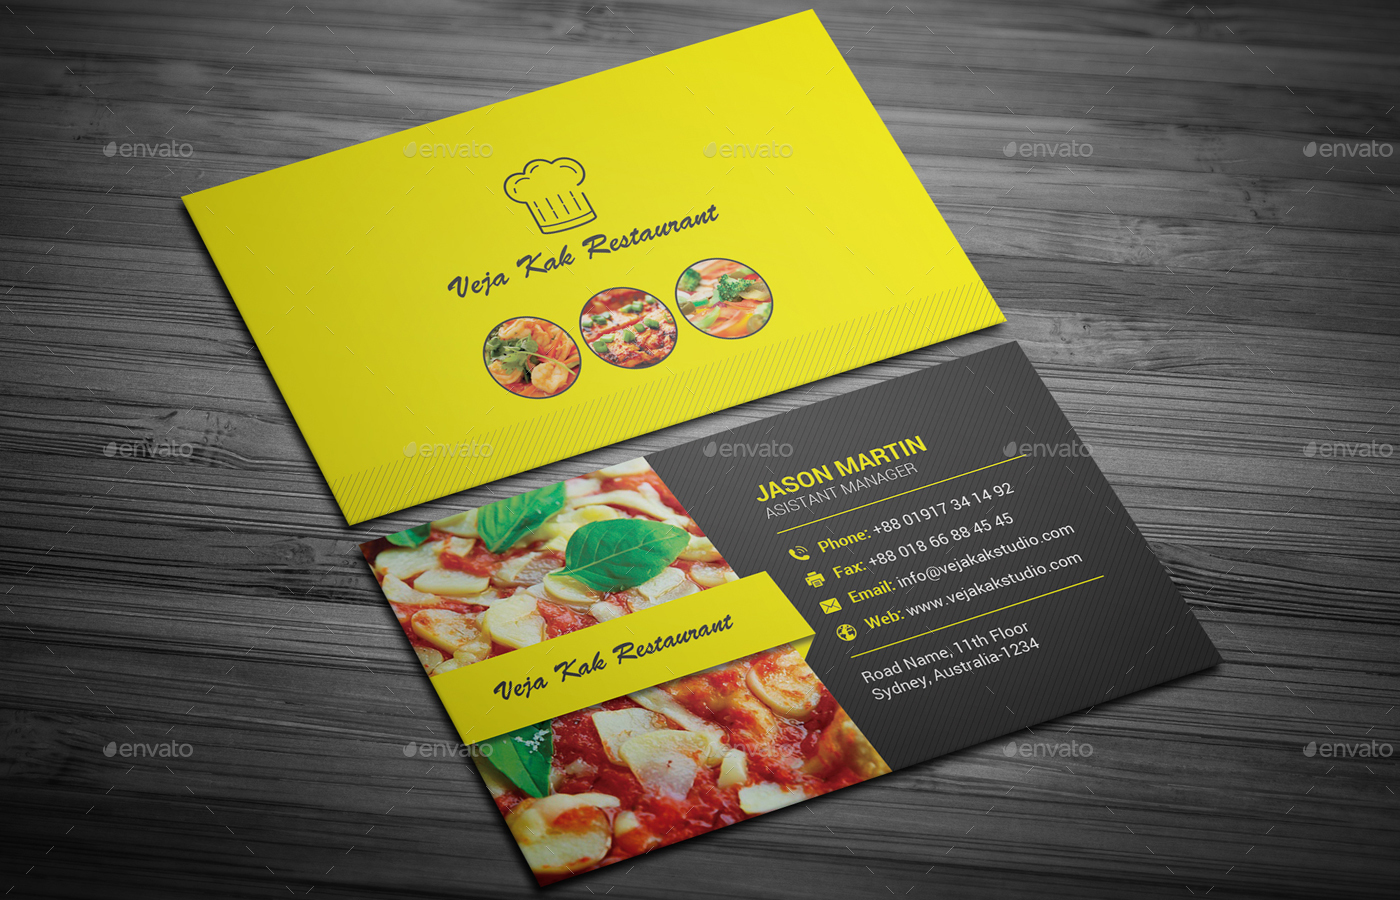 Restaurant business card by vejakakstudio graphicriver industry specific business cards preview01g preview02g preview03g preview04g reheart Gallery